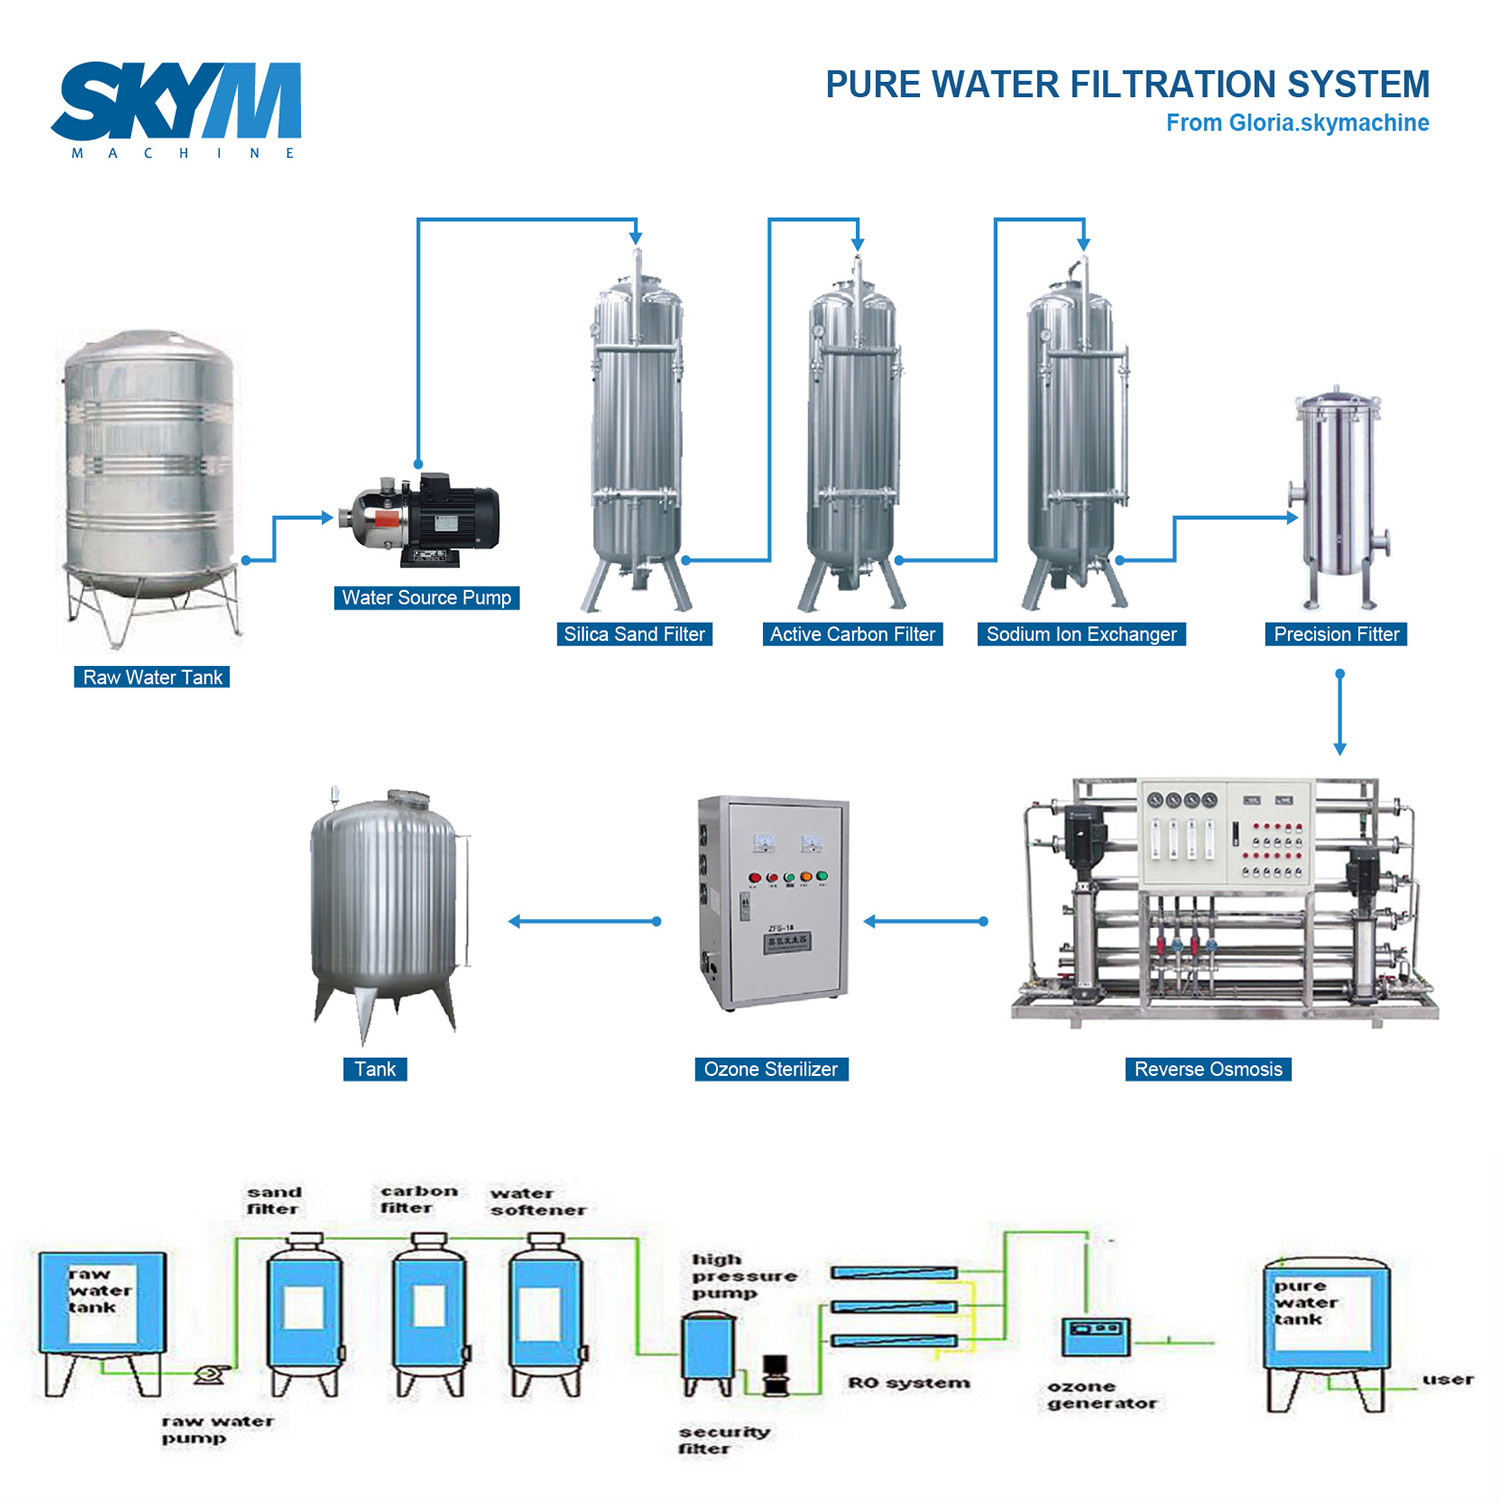 Commercial Sea Ro Water Purification Dosing System Machine For Filtration Diagram 4 Desalting Rate 97 98 5 Recovery 50 70 6 Conductivity Of Raw 400 S 7 Pure 10